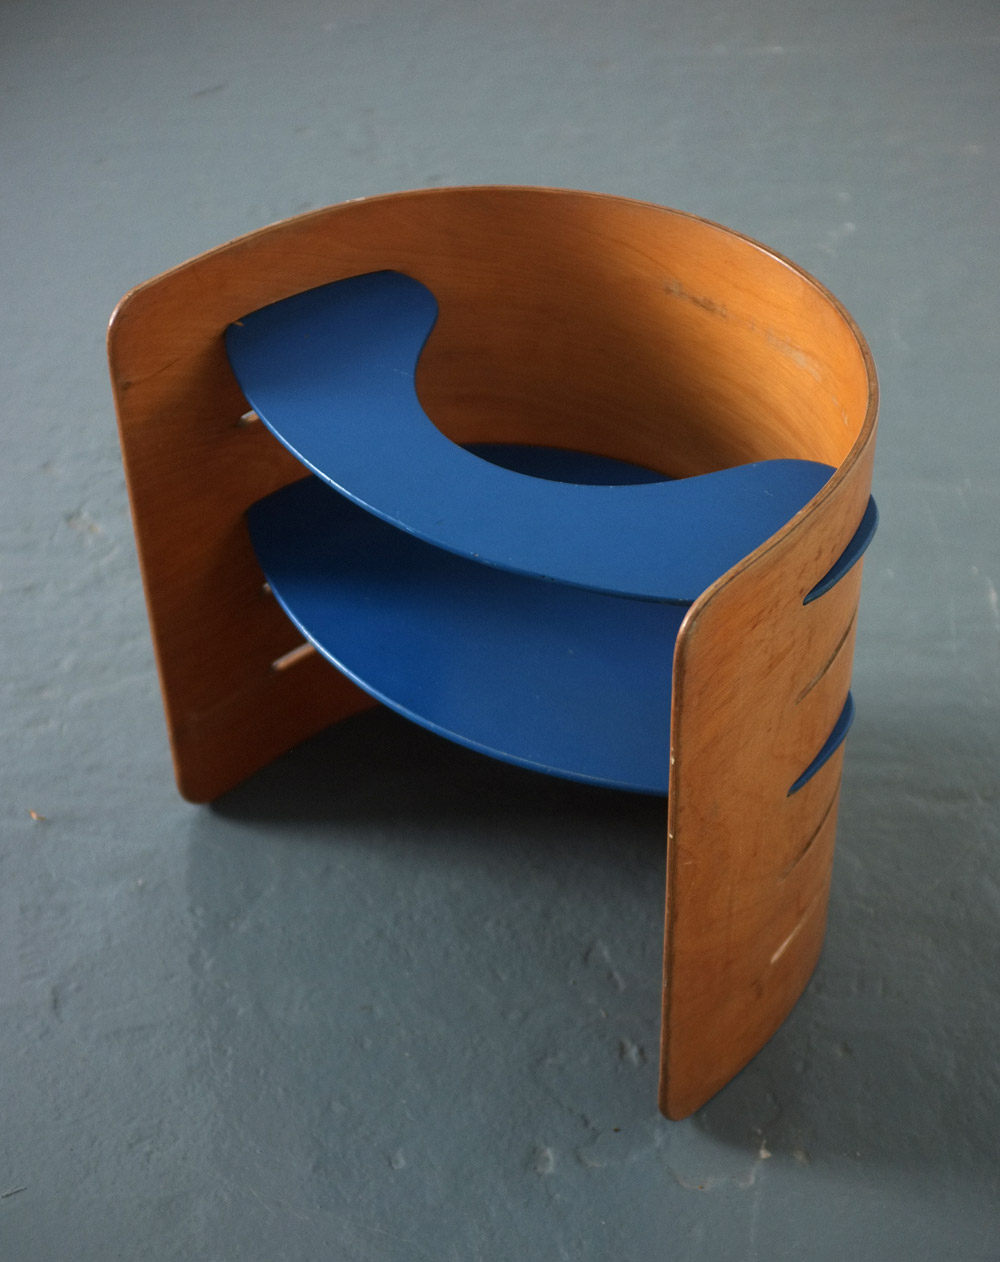 Plywood child's chair by Kristian Vedel